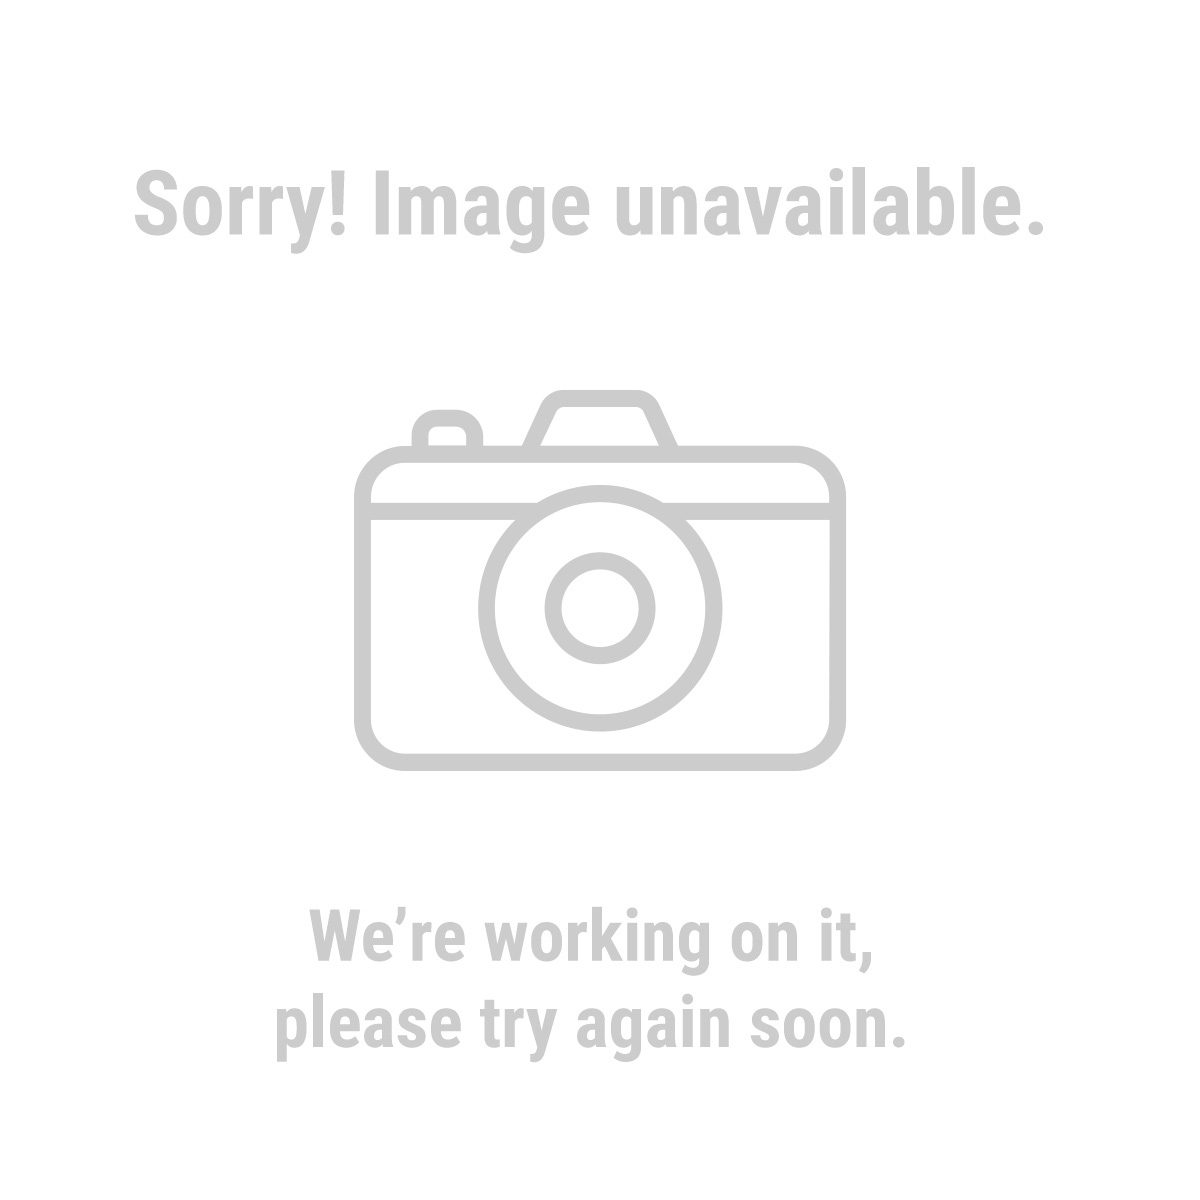 Central-Machinery 95668 1 Horsepower Wood Shaper